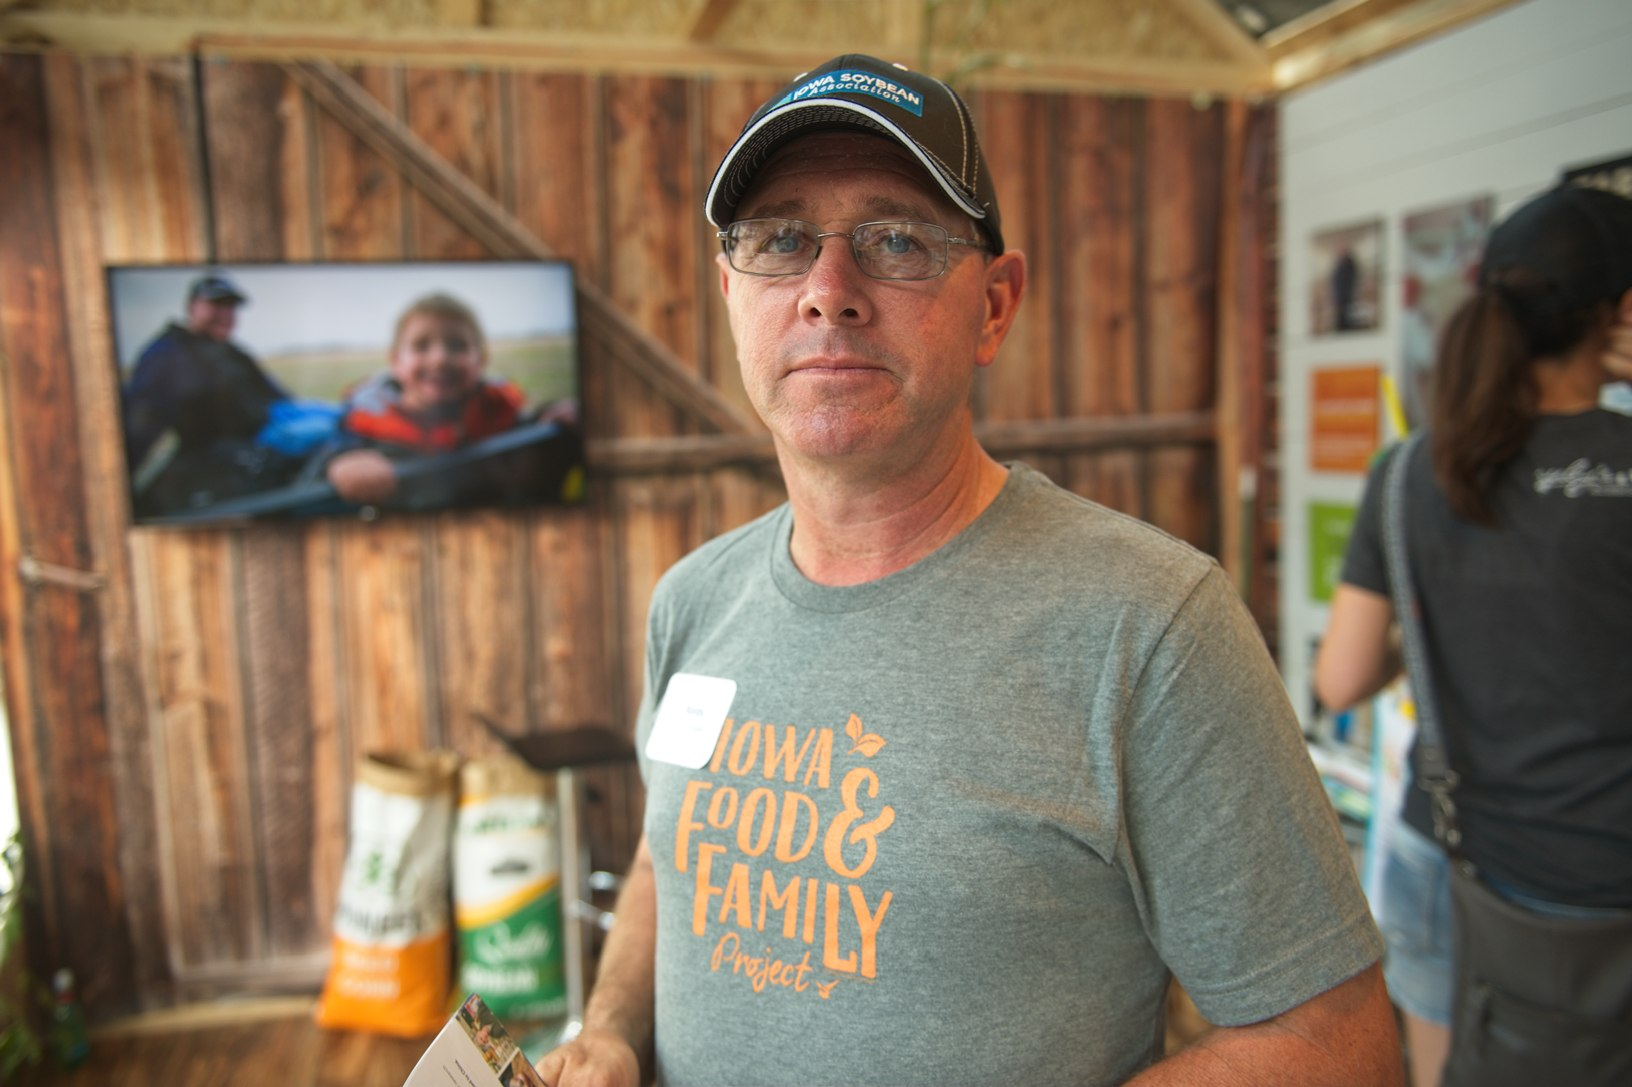 Randy Miller, a farmer from Lacona, volunteers at the Iowa Food & Family Project exhibit. Photo credit: Joseph L. Murphy, Iowa Soybean Association